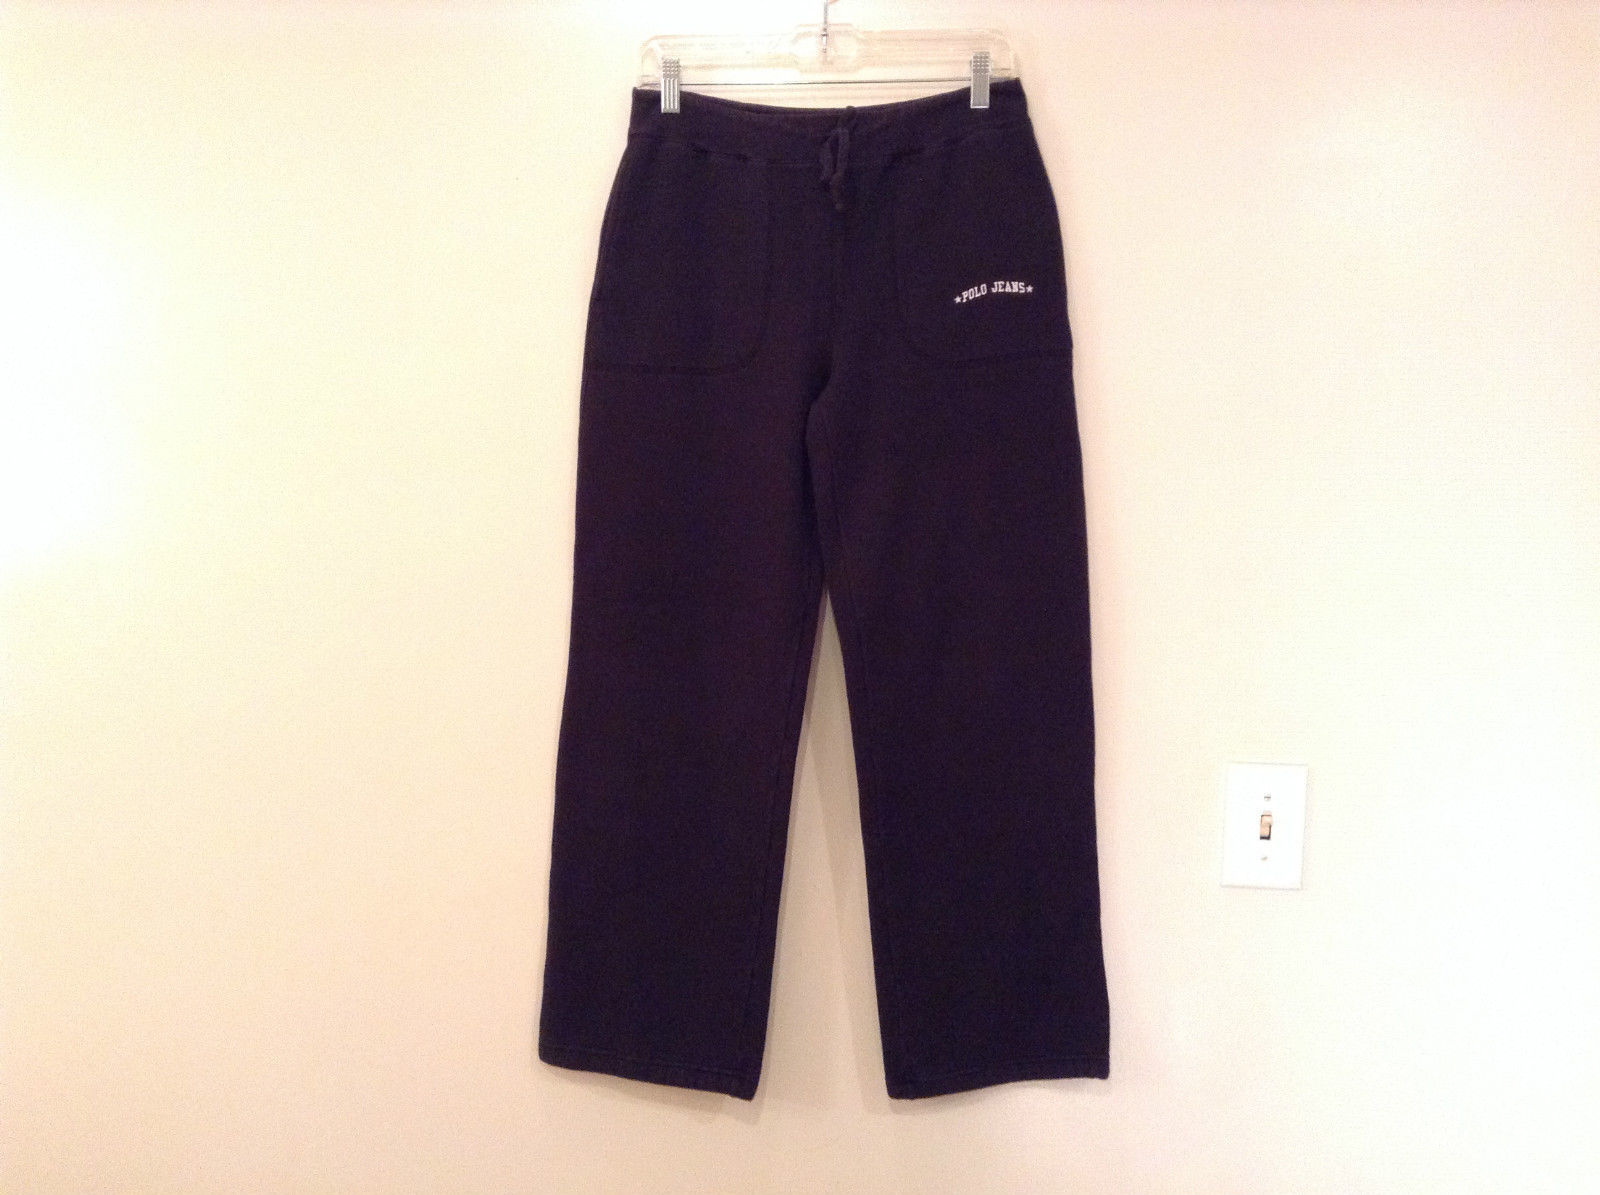 Black Polo Jeans Sweatpants Adjustable Waist String Size Small